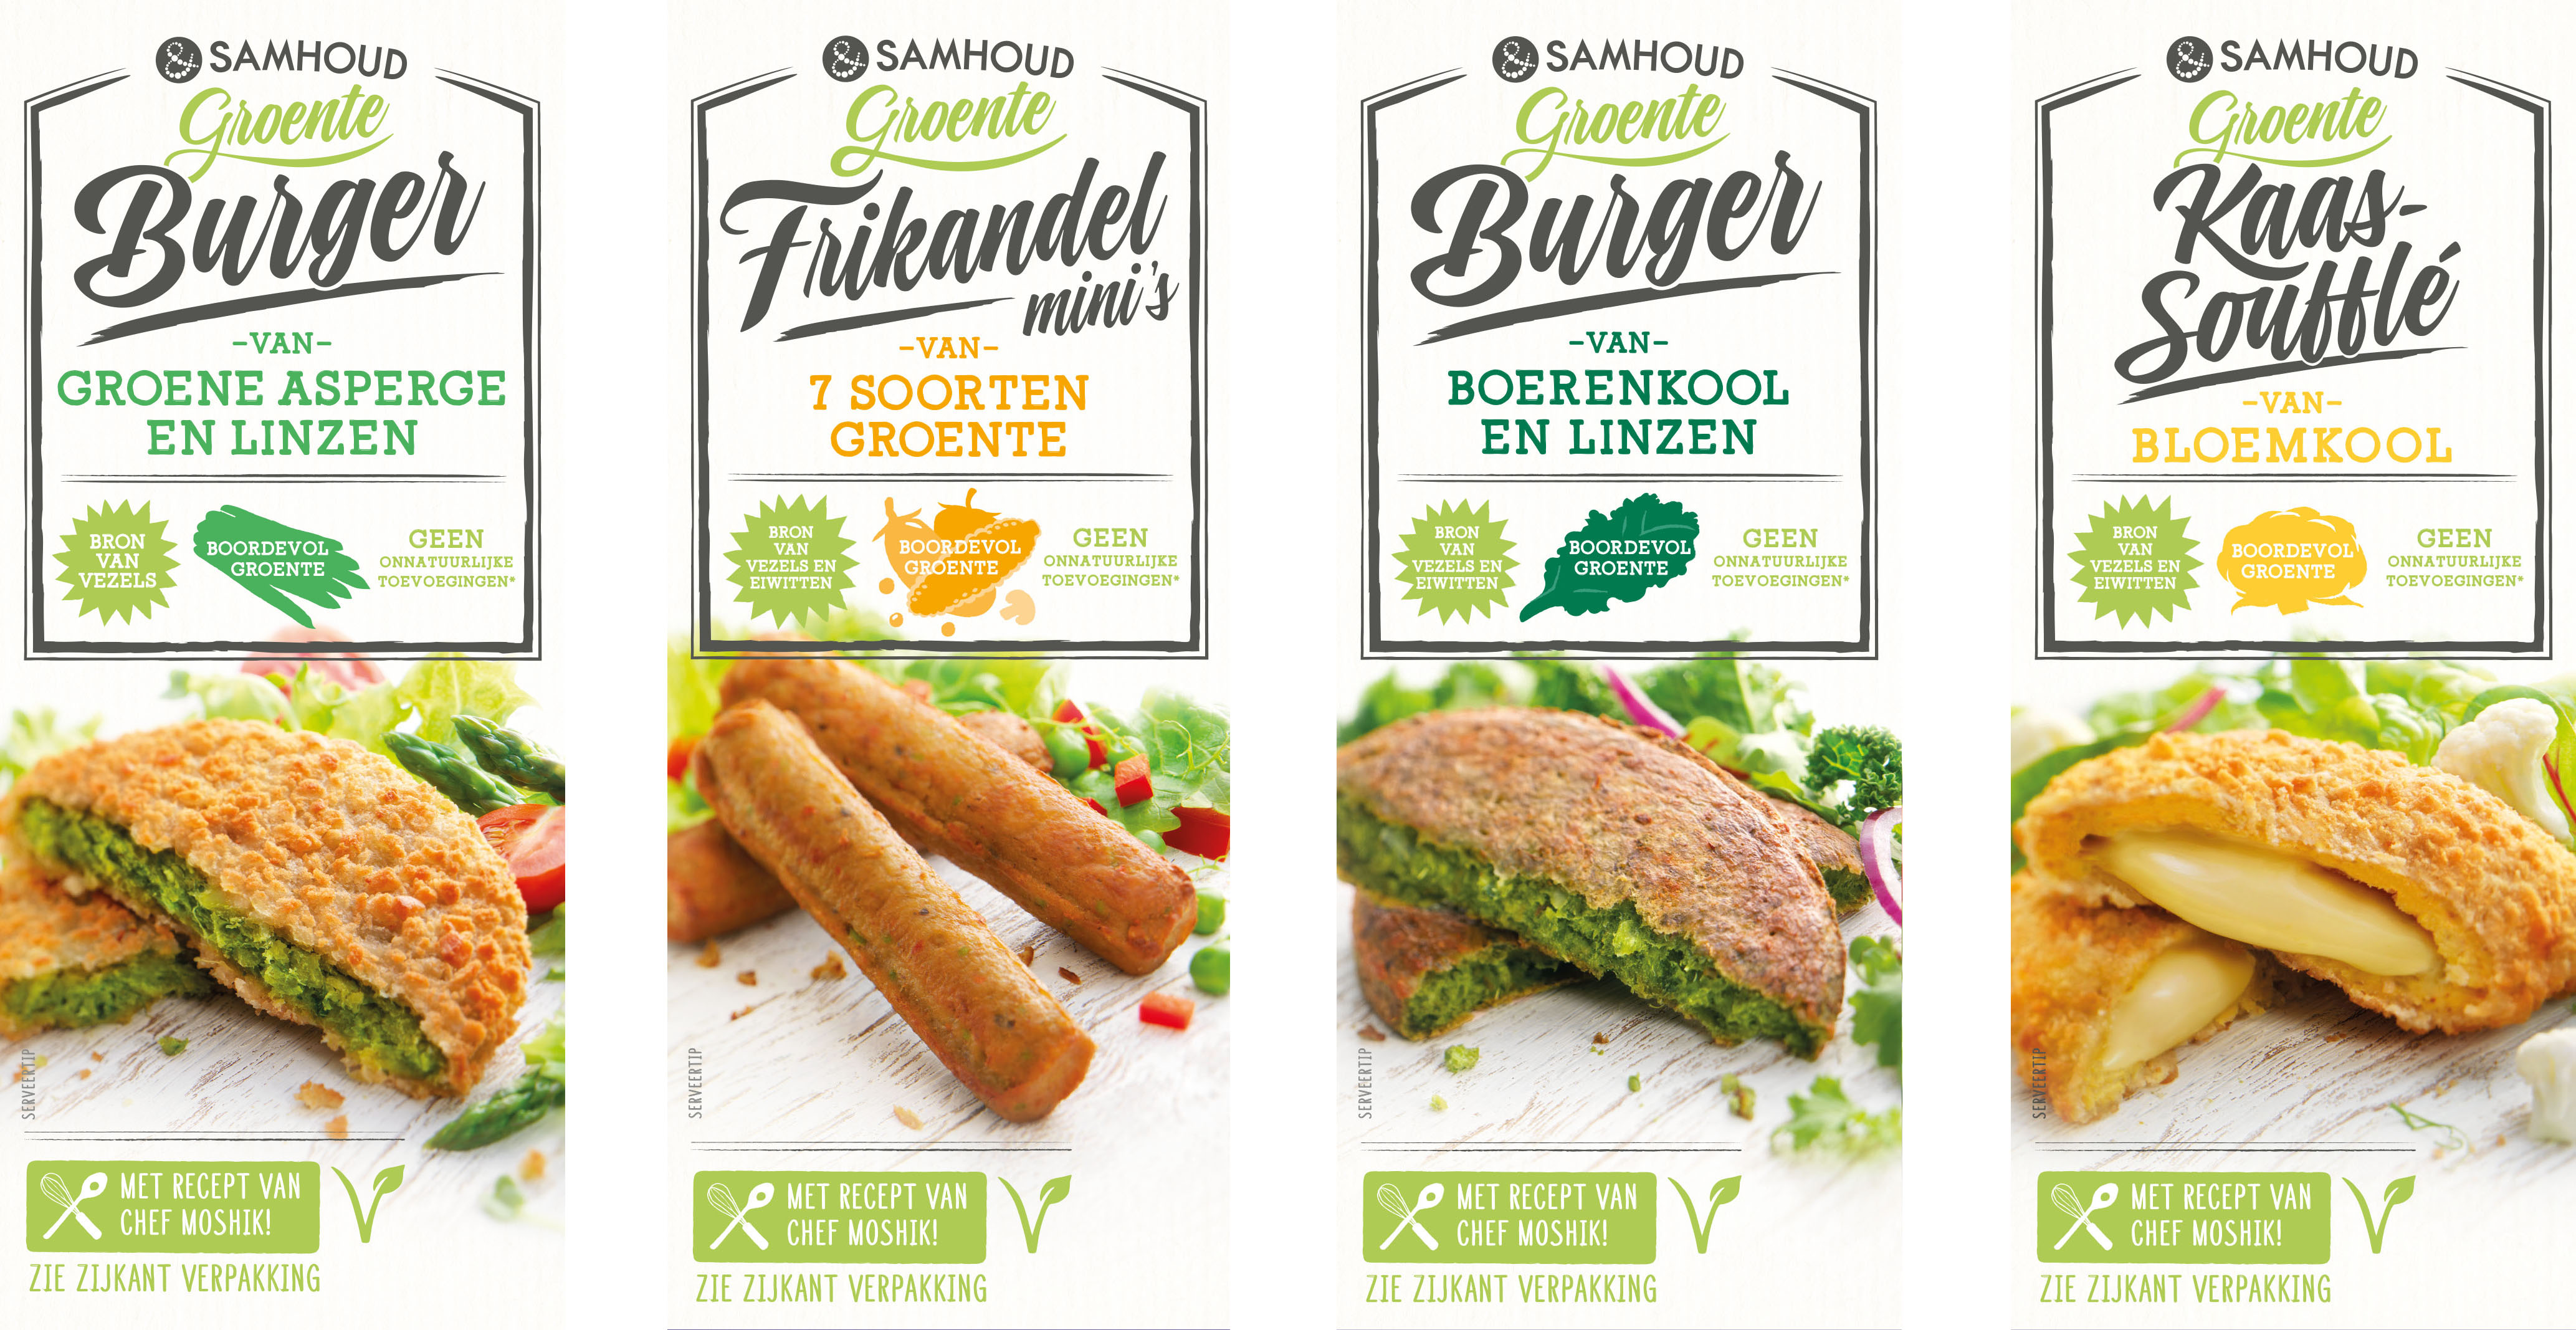 Food packaging photography of four of Samhoud's vegetable burgers made by Studio_m Photography Amsterdam